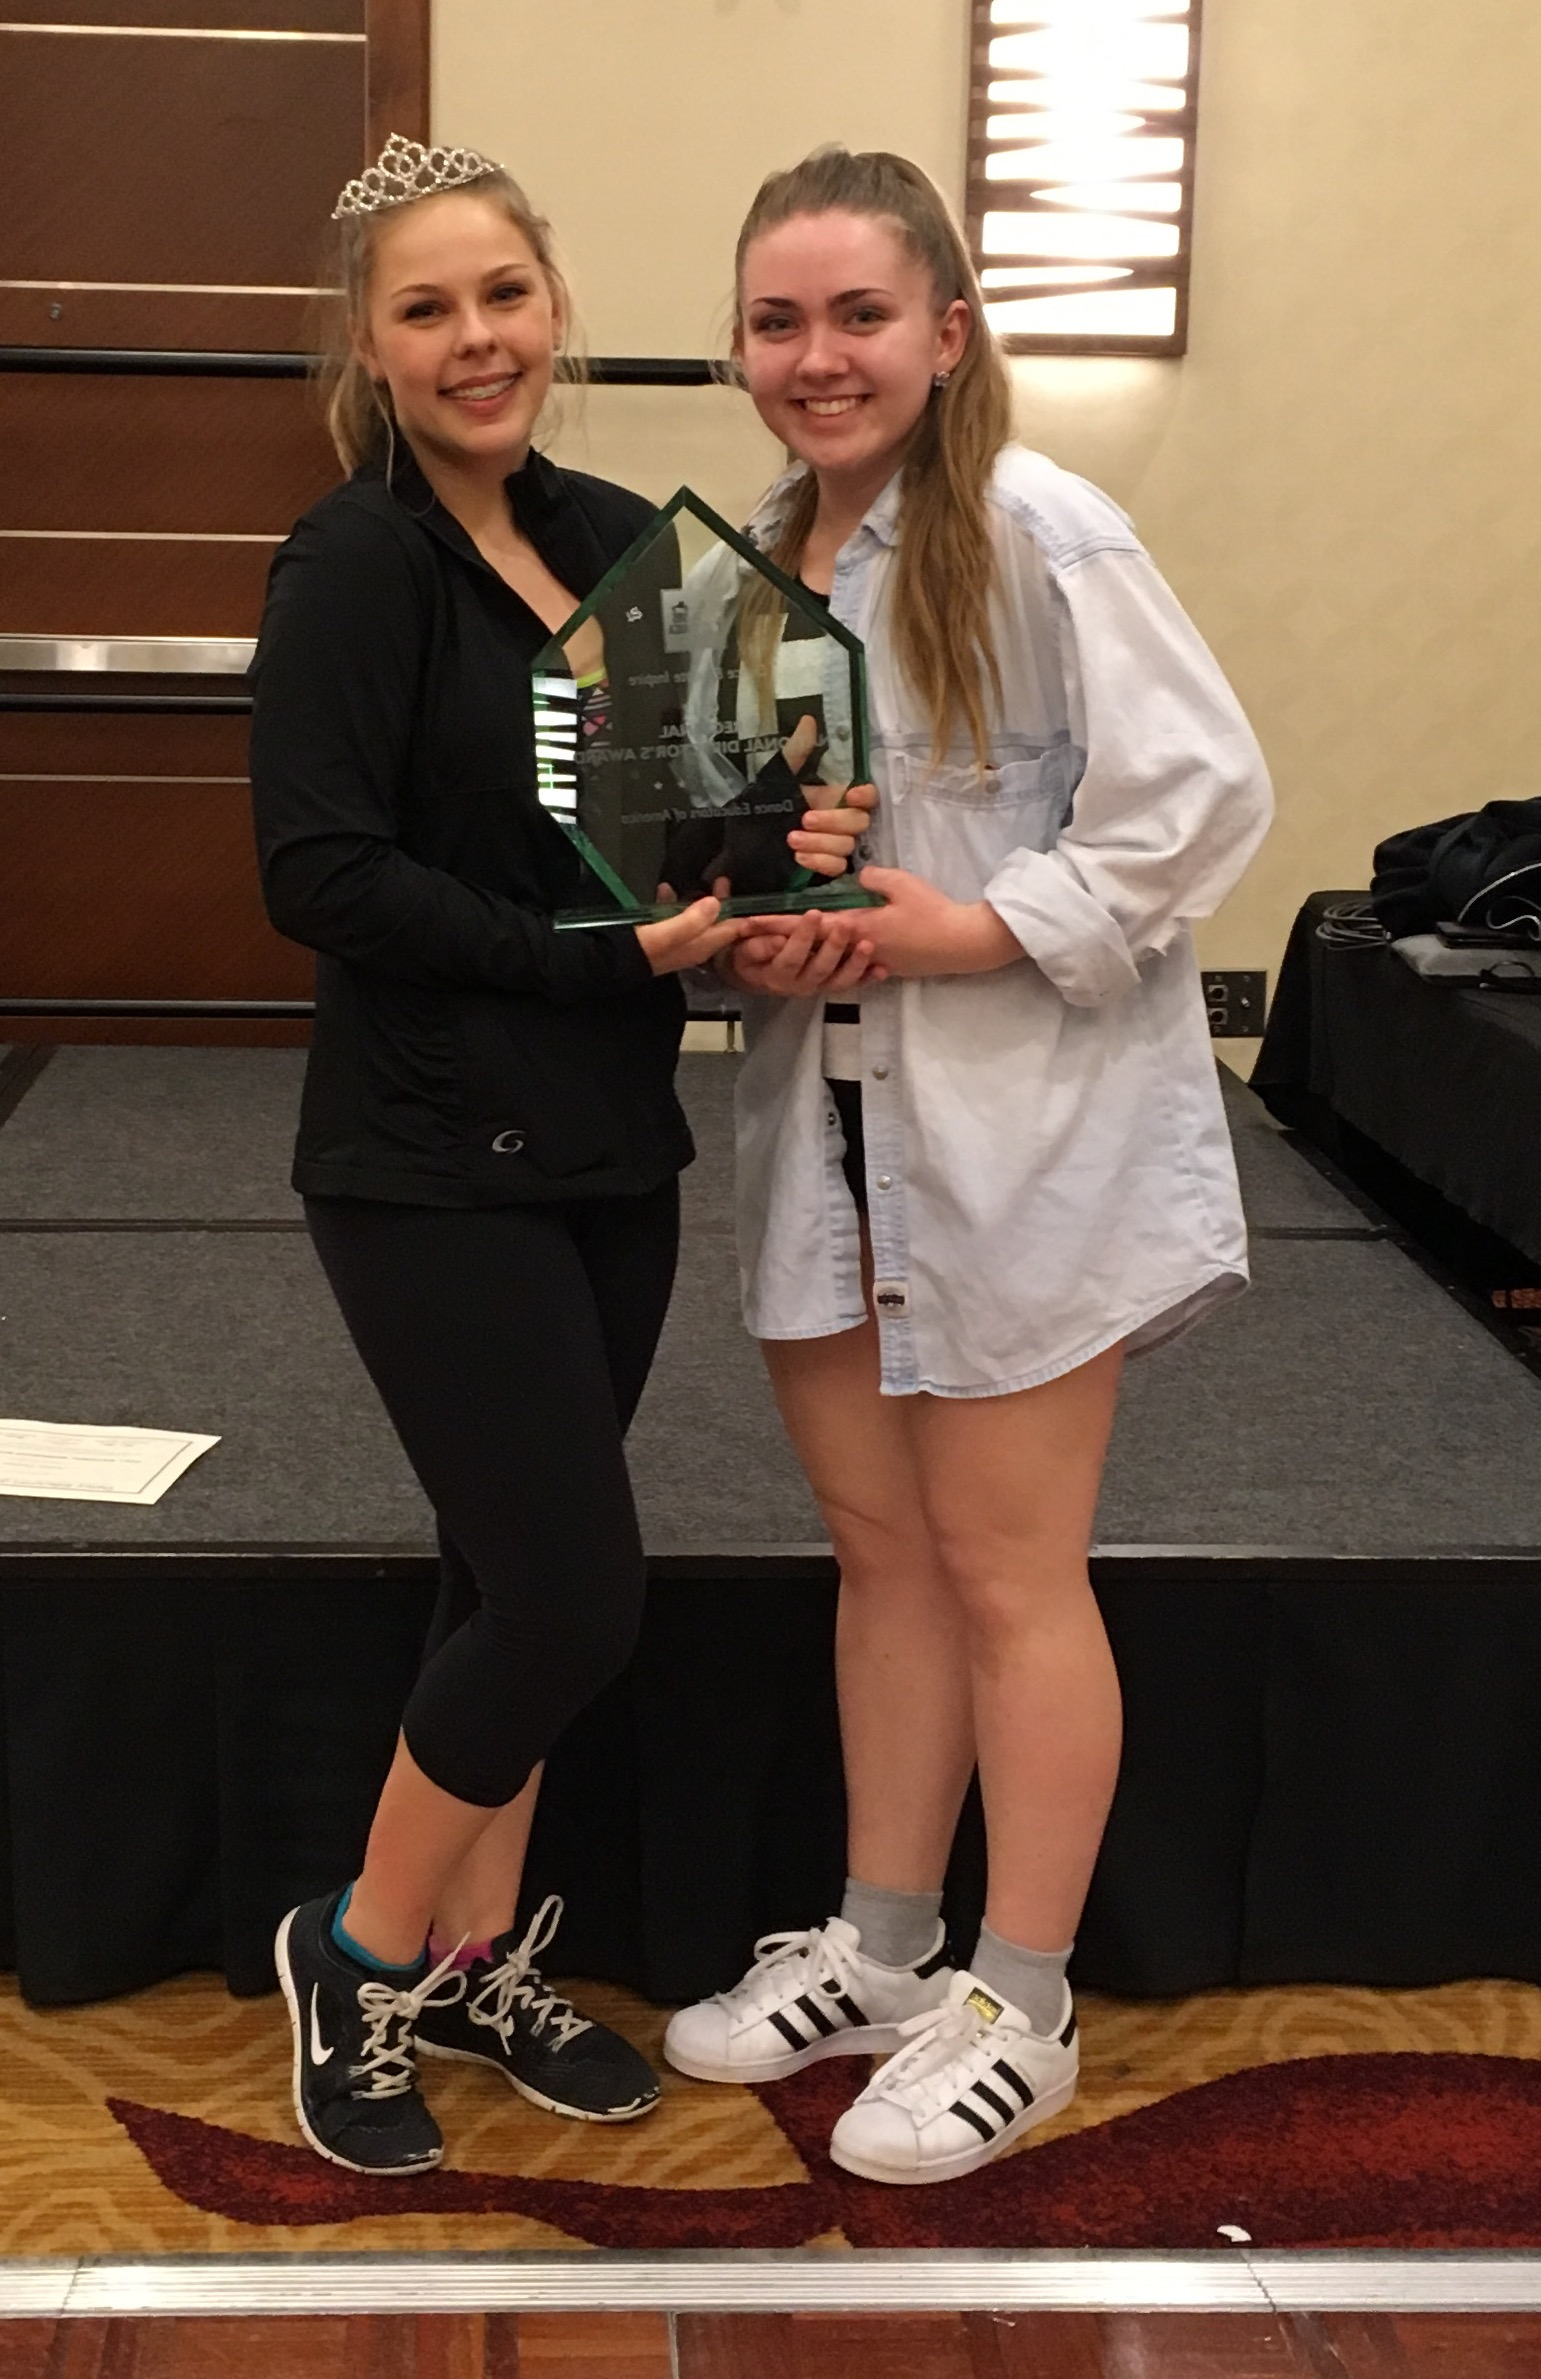 """""""Say Something"""" choreographed by Kasey Thomas, received the DEA National Director's Award for the overall highest score in all combined solos, duos & trios at the Seattle Convention!"""